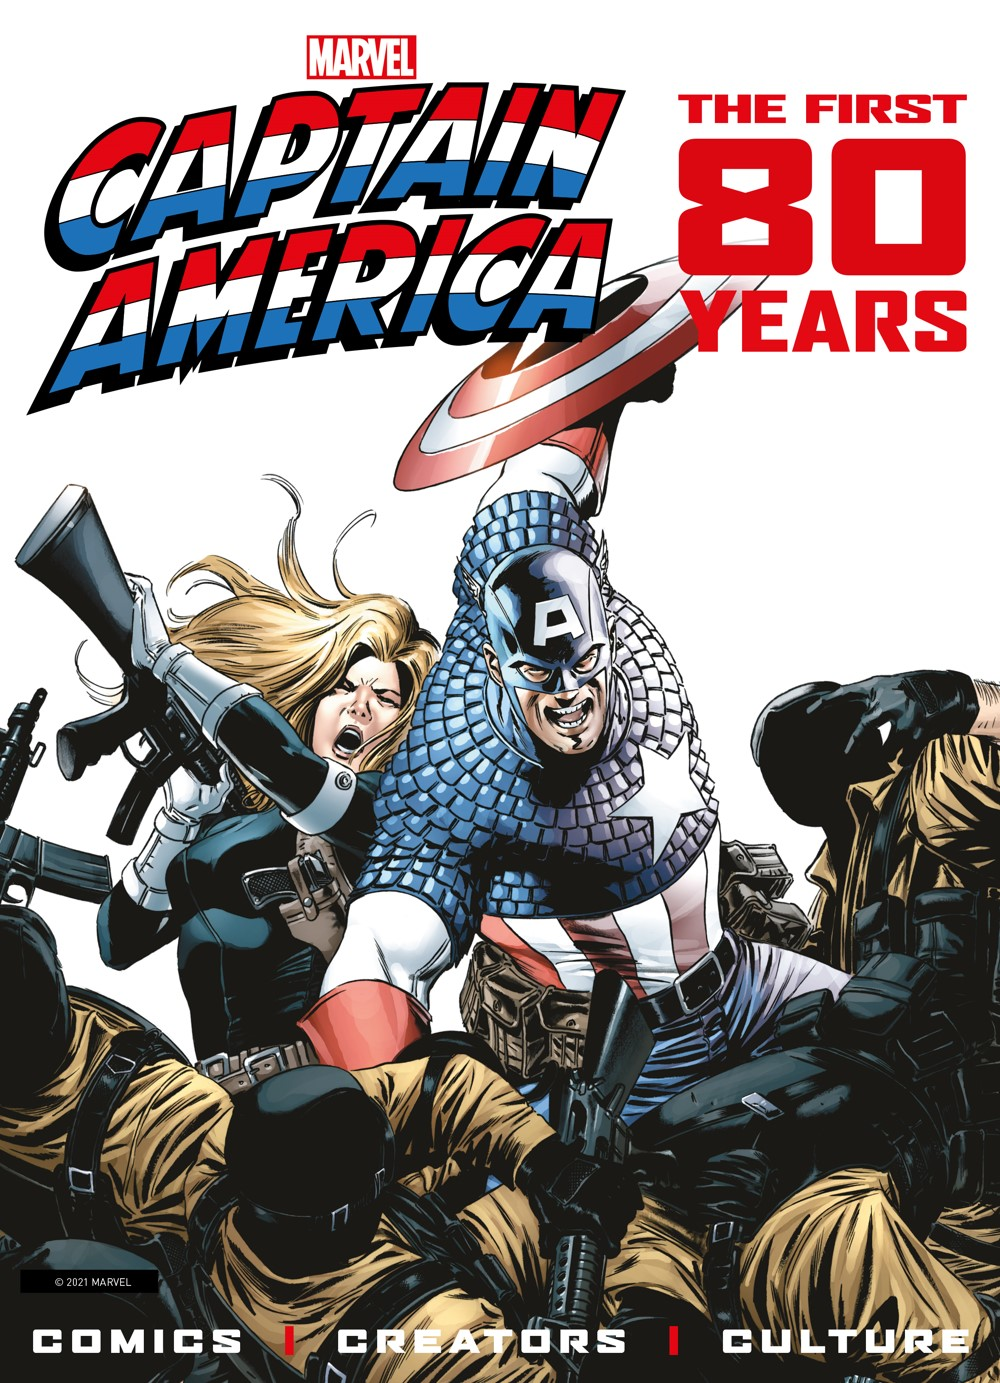 exclusive2 ComicList Previews: MARVEL COMICS CAPTAIN AMERICA THE FIRST 80 YEARS